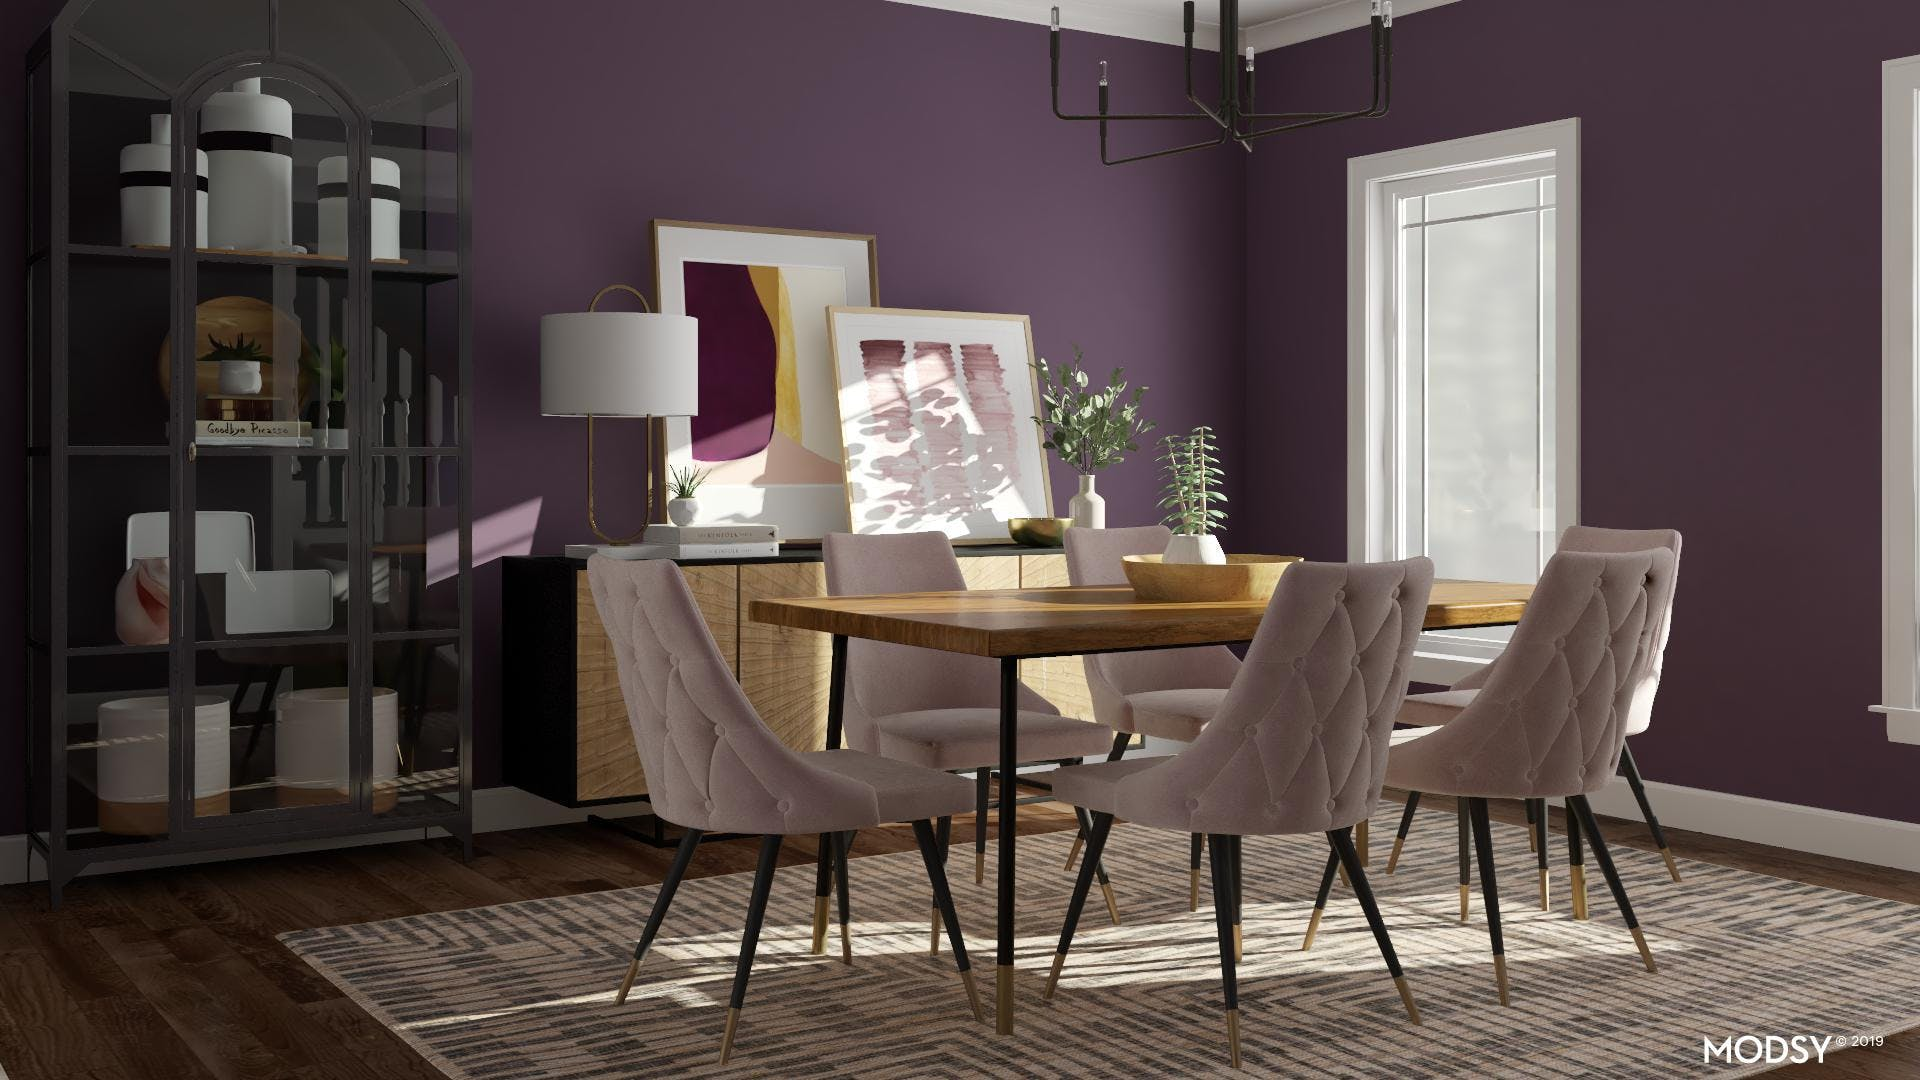 Modern Dining Room With An Unexpected Twist